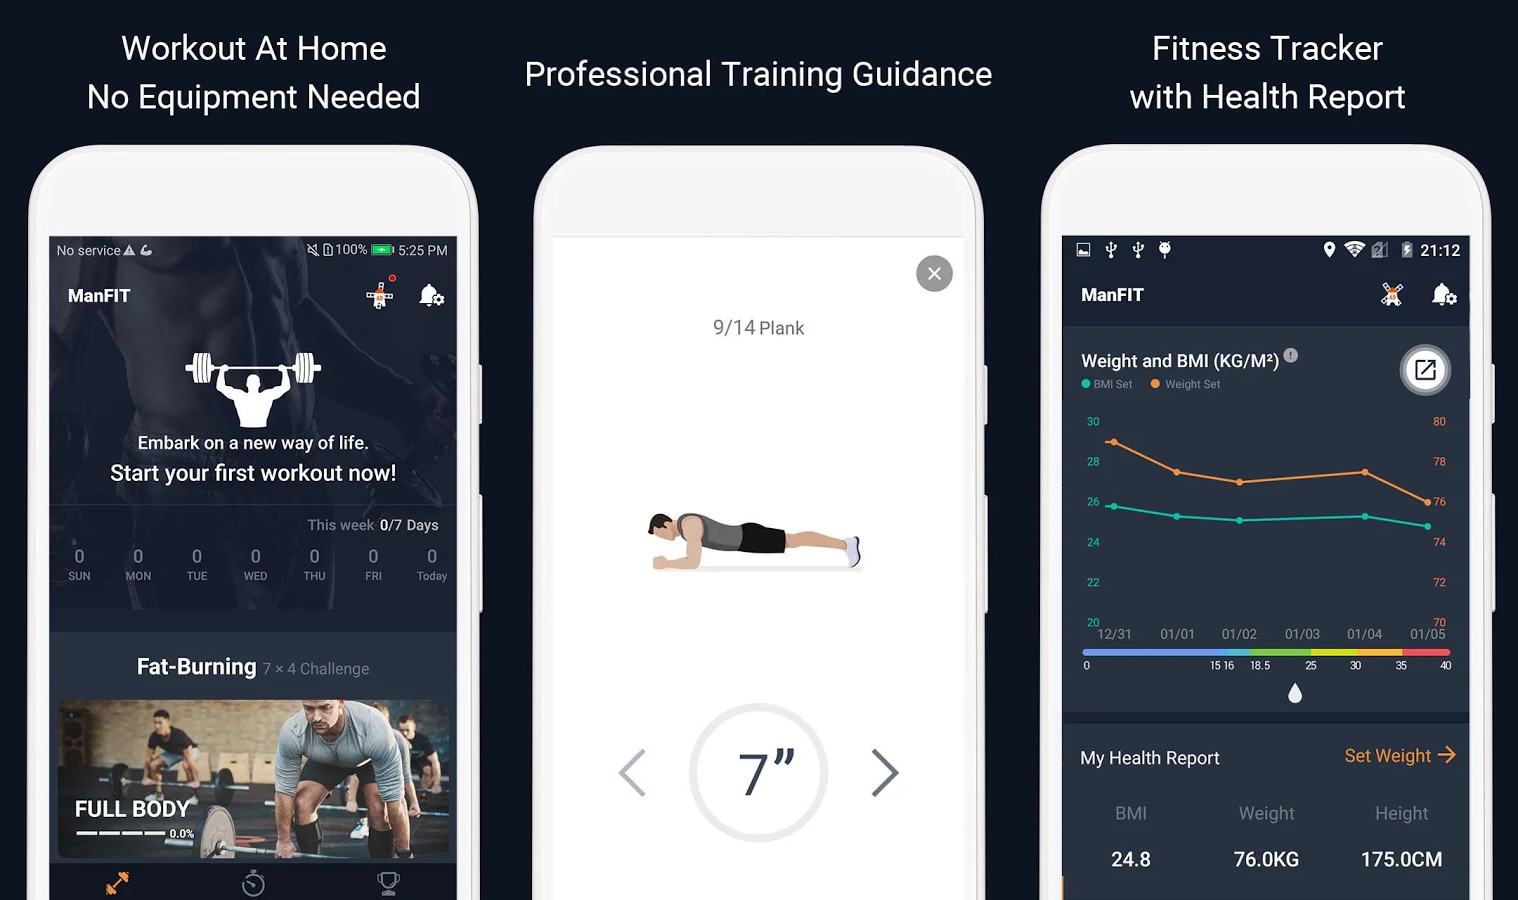 12b8b0433a8 ManFIT is a freeFREE fitness app for men (or women) who want to workout at  home. It requires no fitness equipment